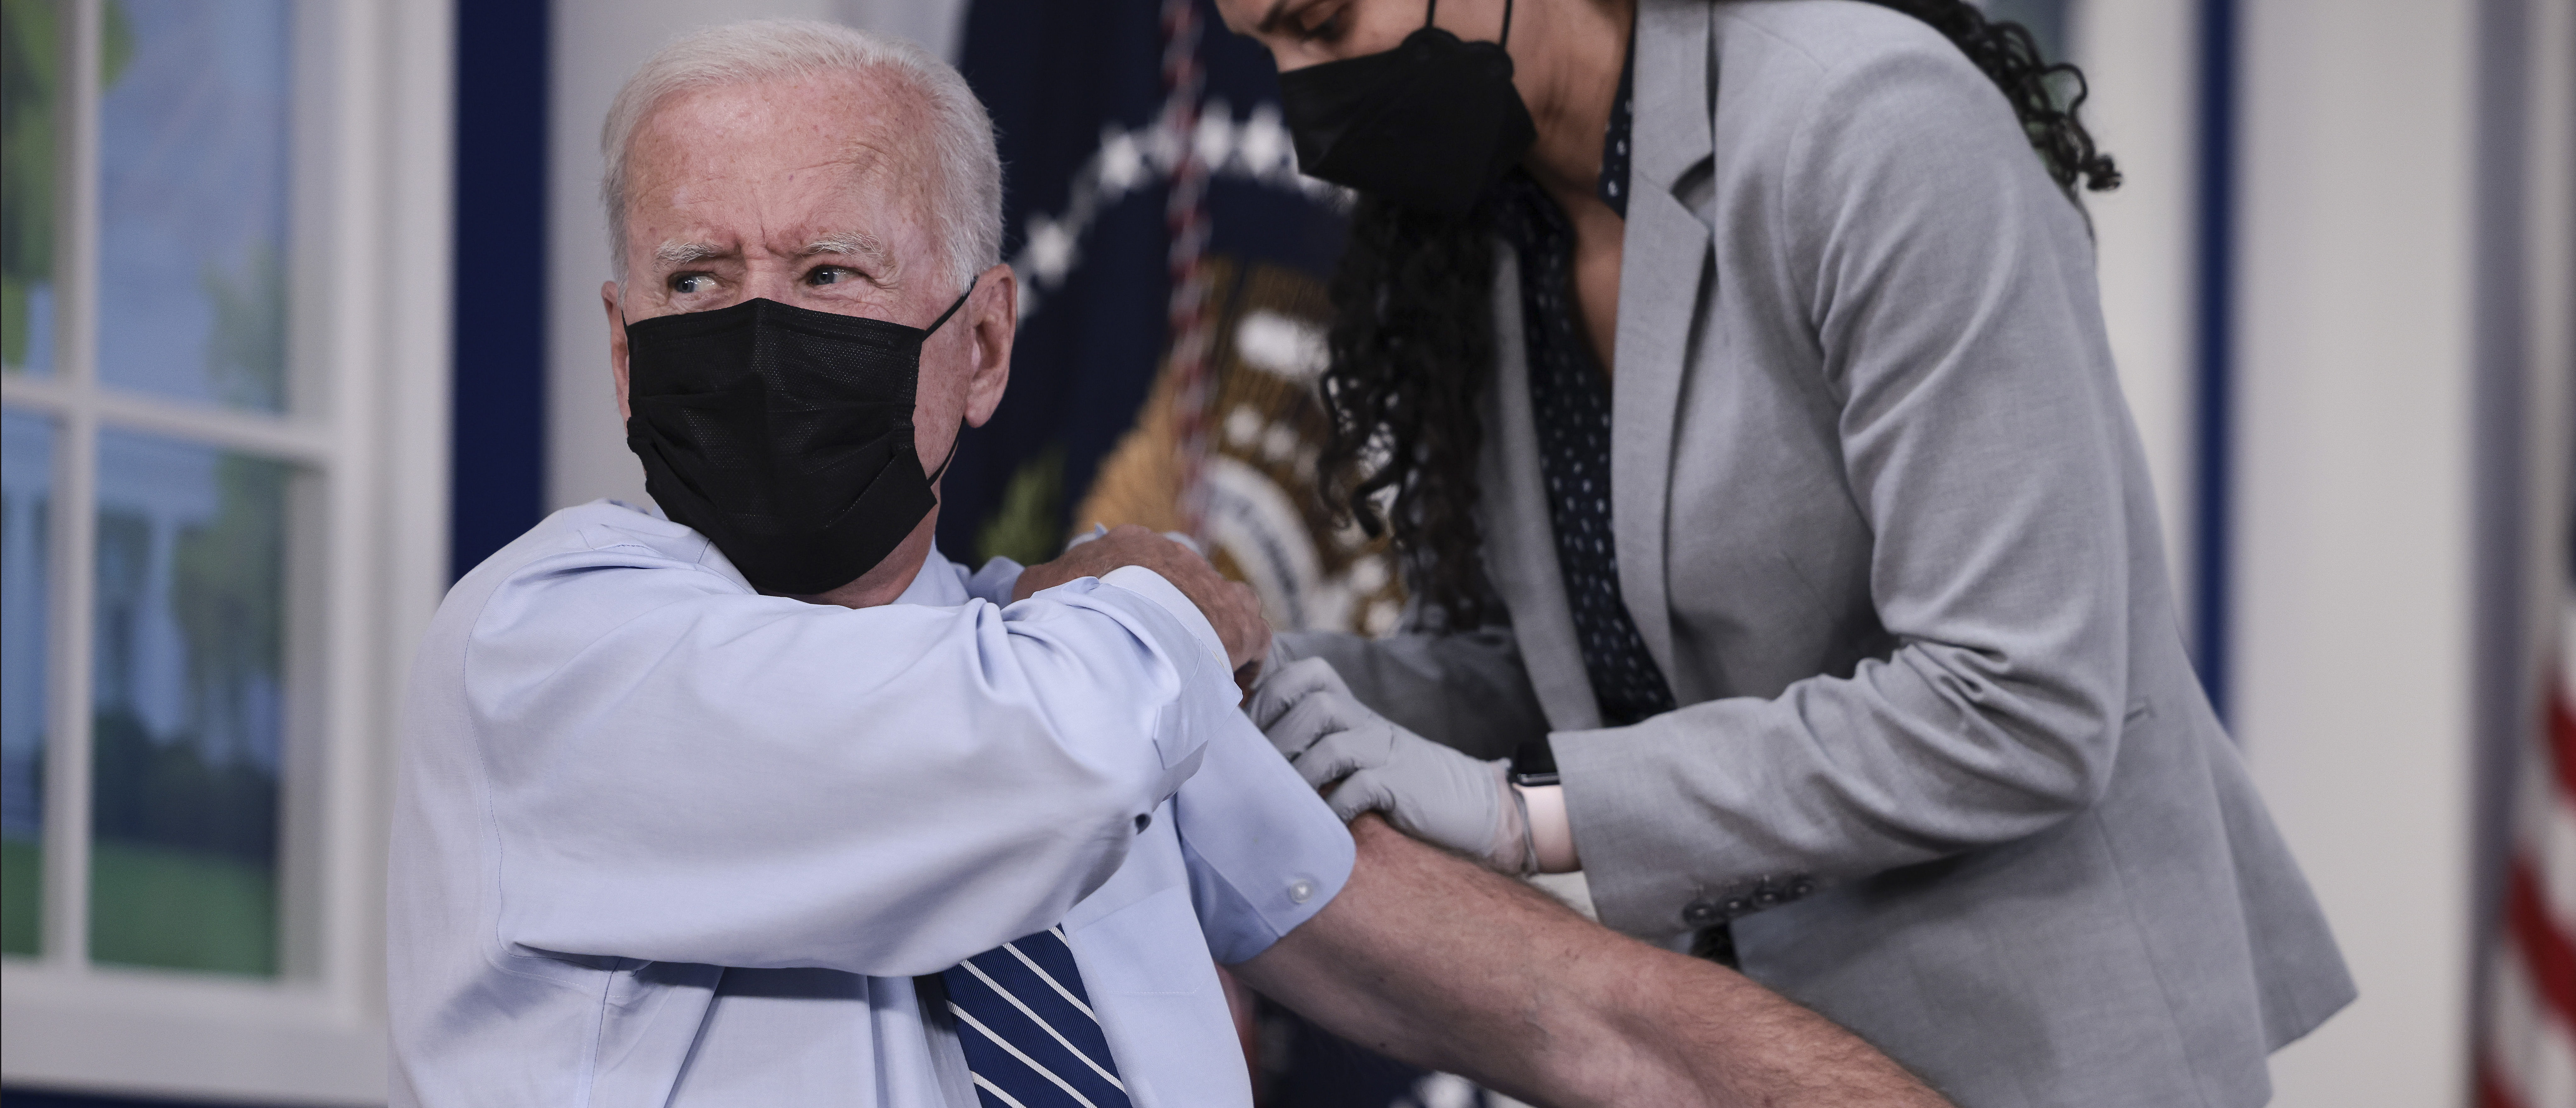 U.S. President Joe Biden rolls up his sleeve before receiving a third dose of the Pfizer/BioNTech Covid-19 vaccine in the South Court Auditorium in the White House September 27, 2021 in Washington, DC. (Photo by Anna Moneymaker/Getty Images)